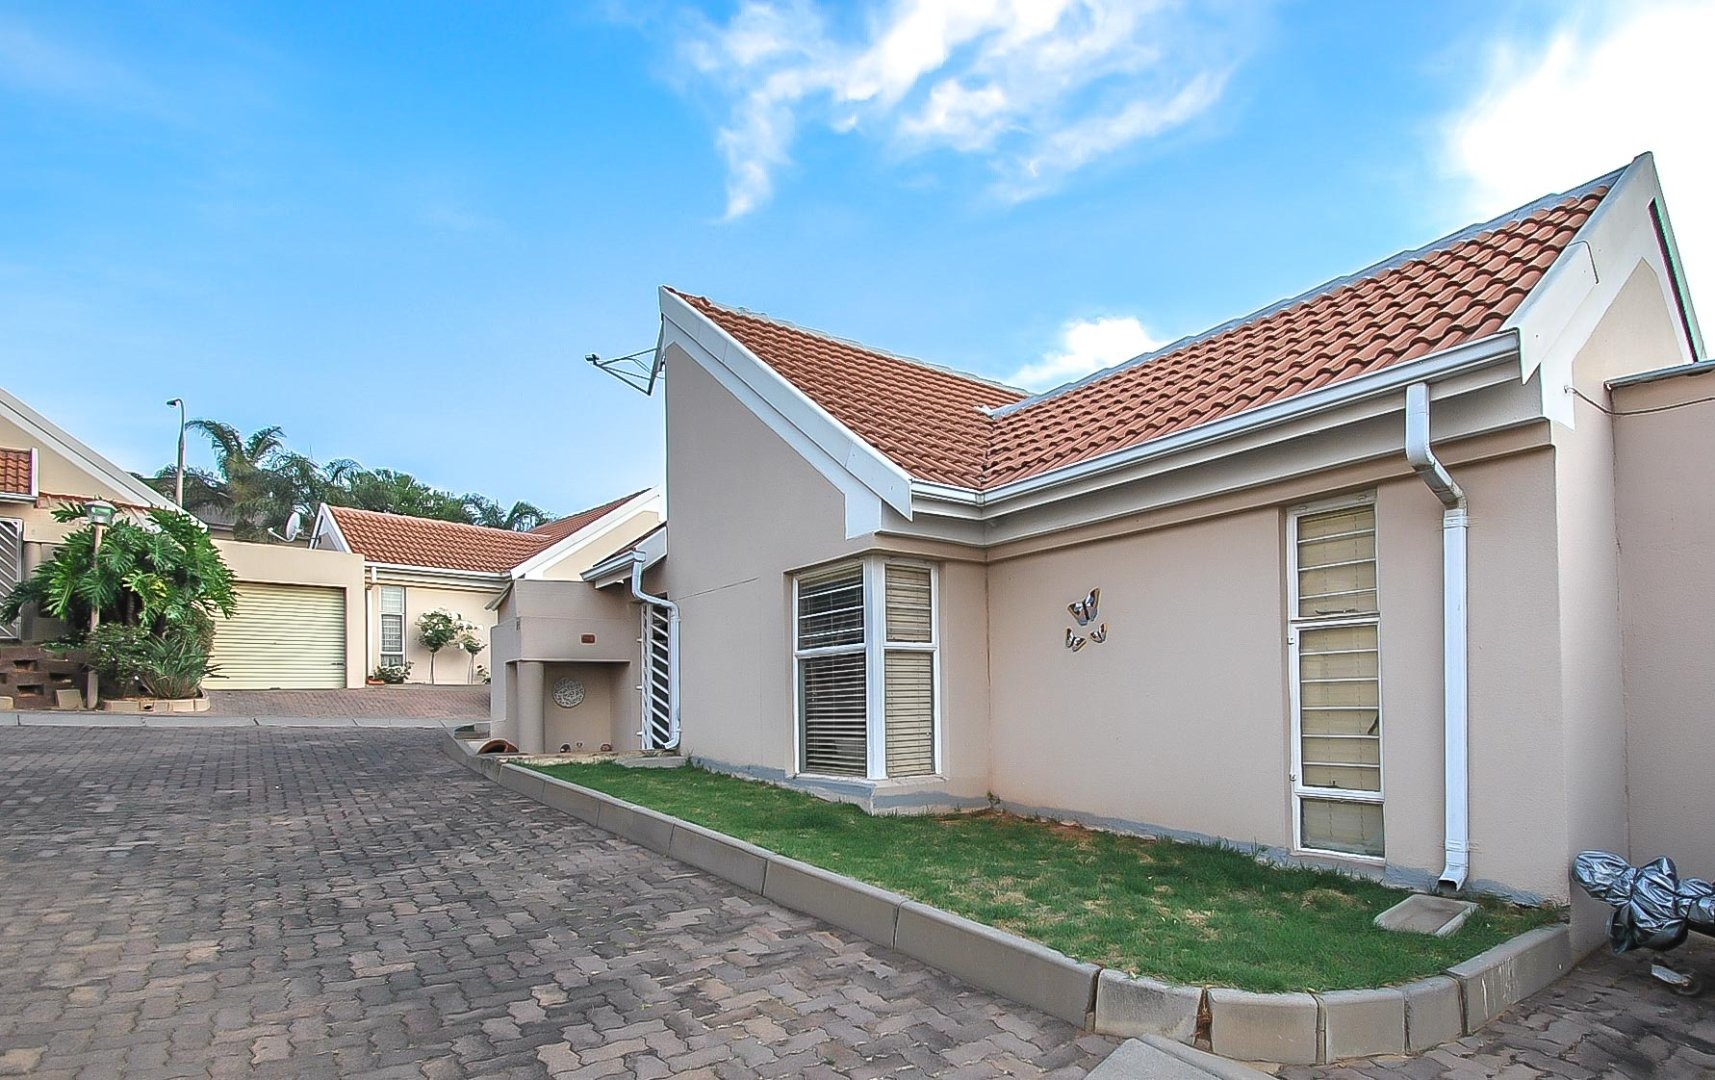 3 Bedroom Townhouse For Sale in Quellerina